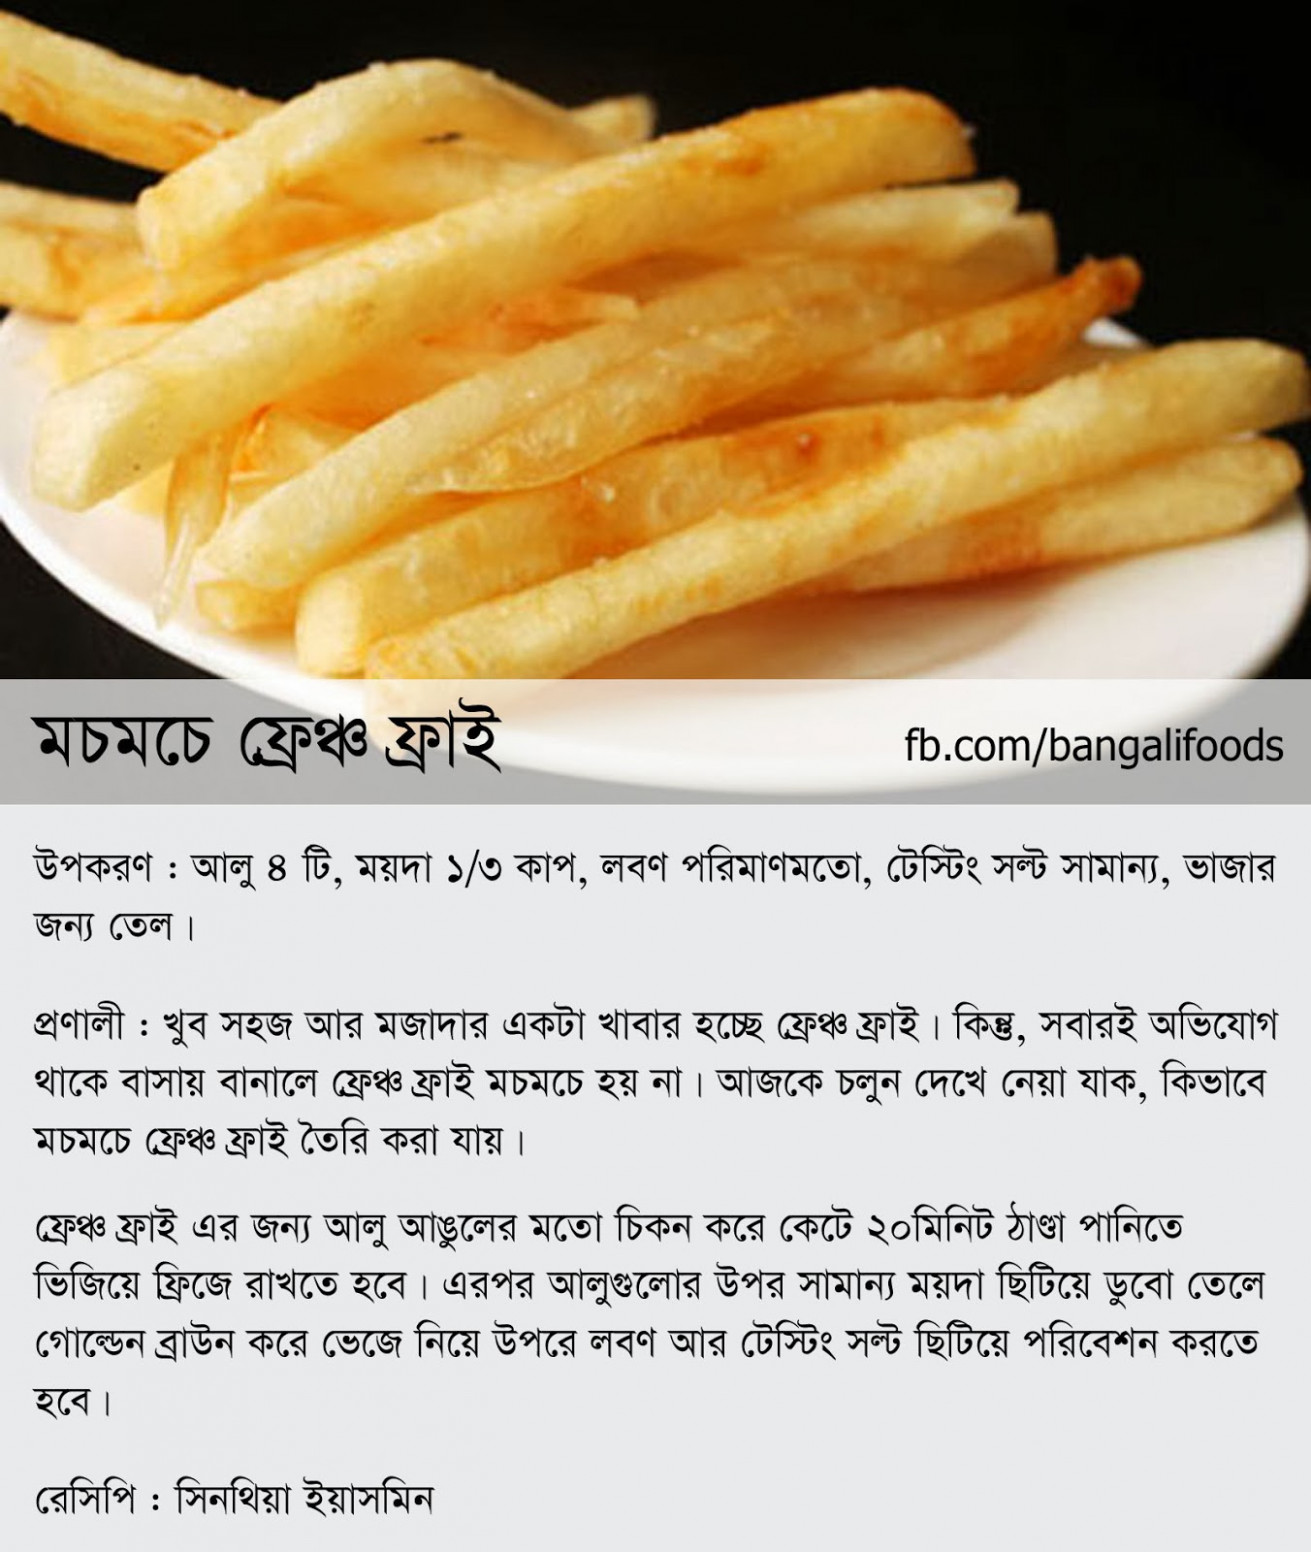 pasta-recipes-bangla